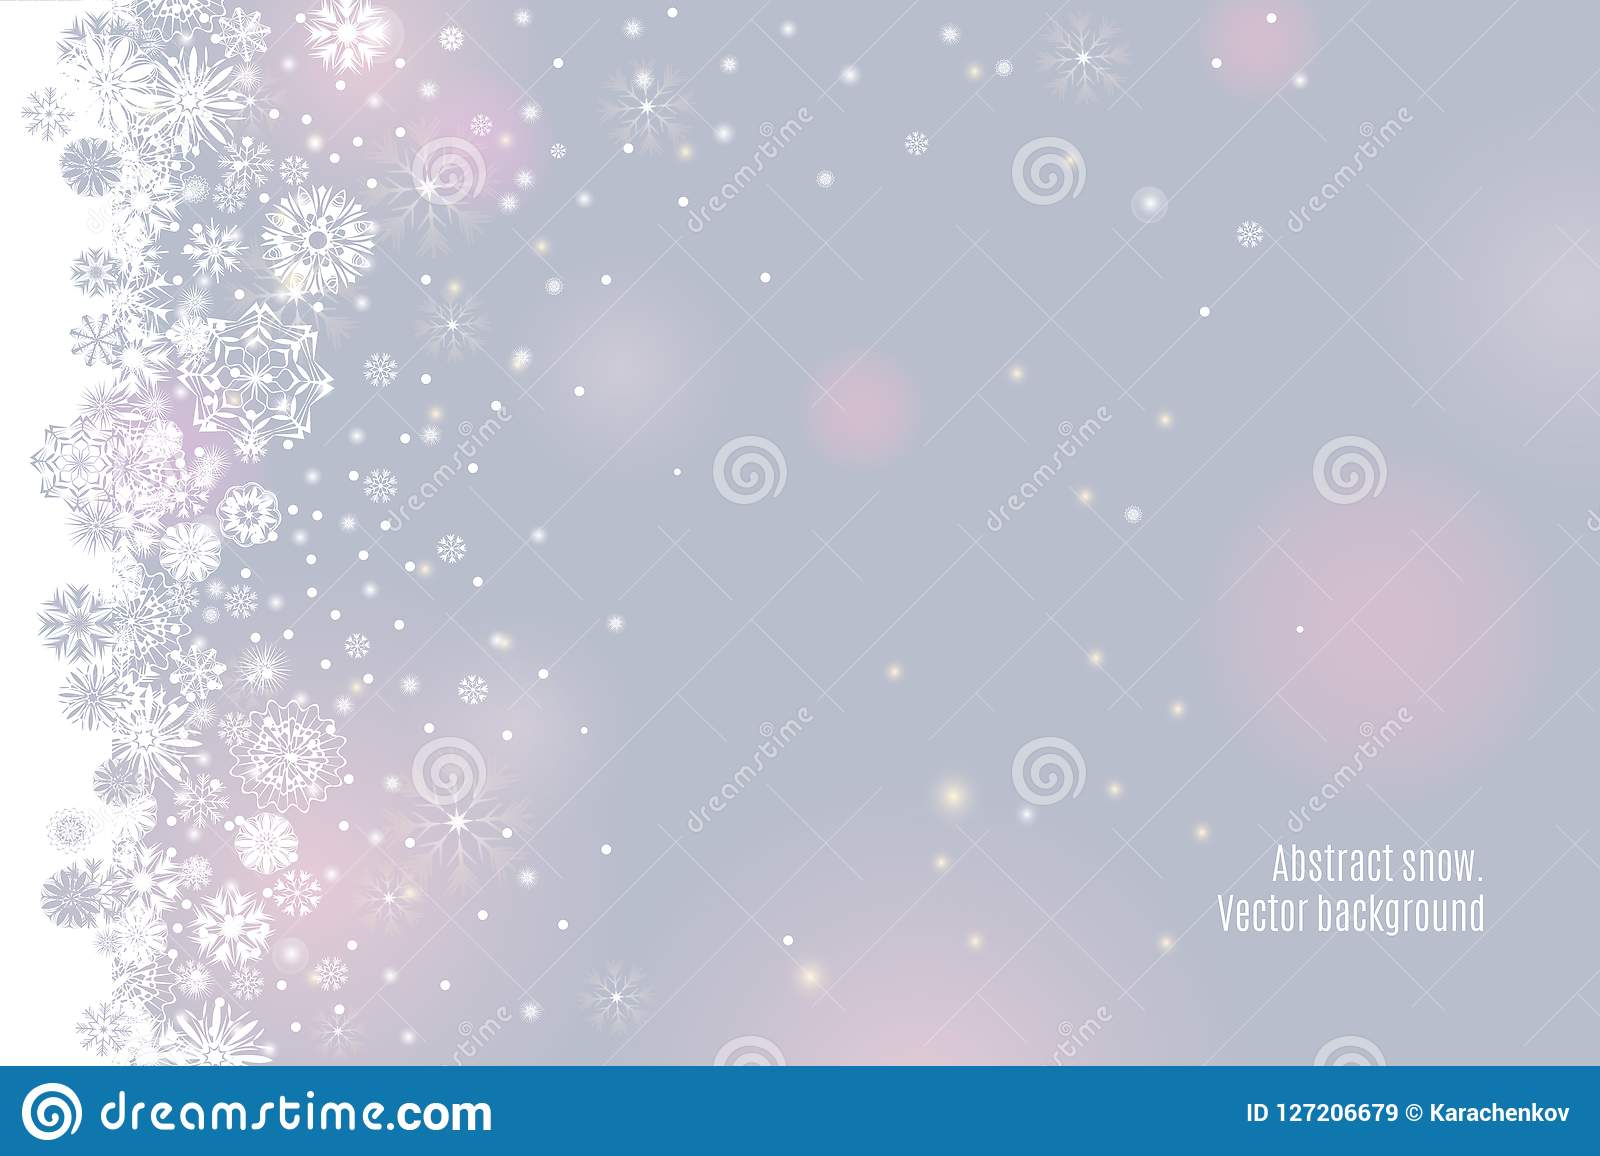 Falling snow border on a light tender silver grey background